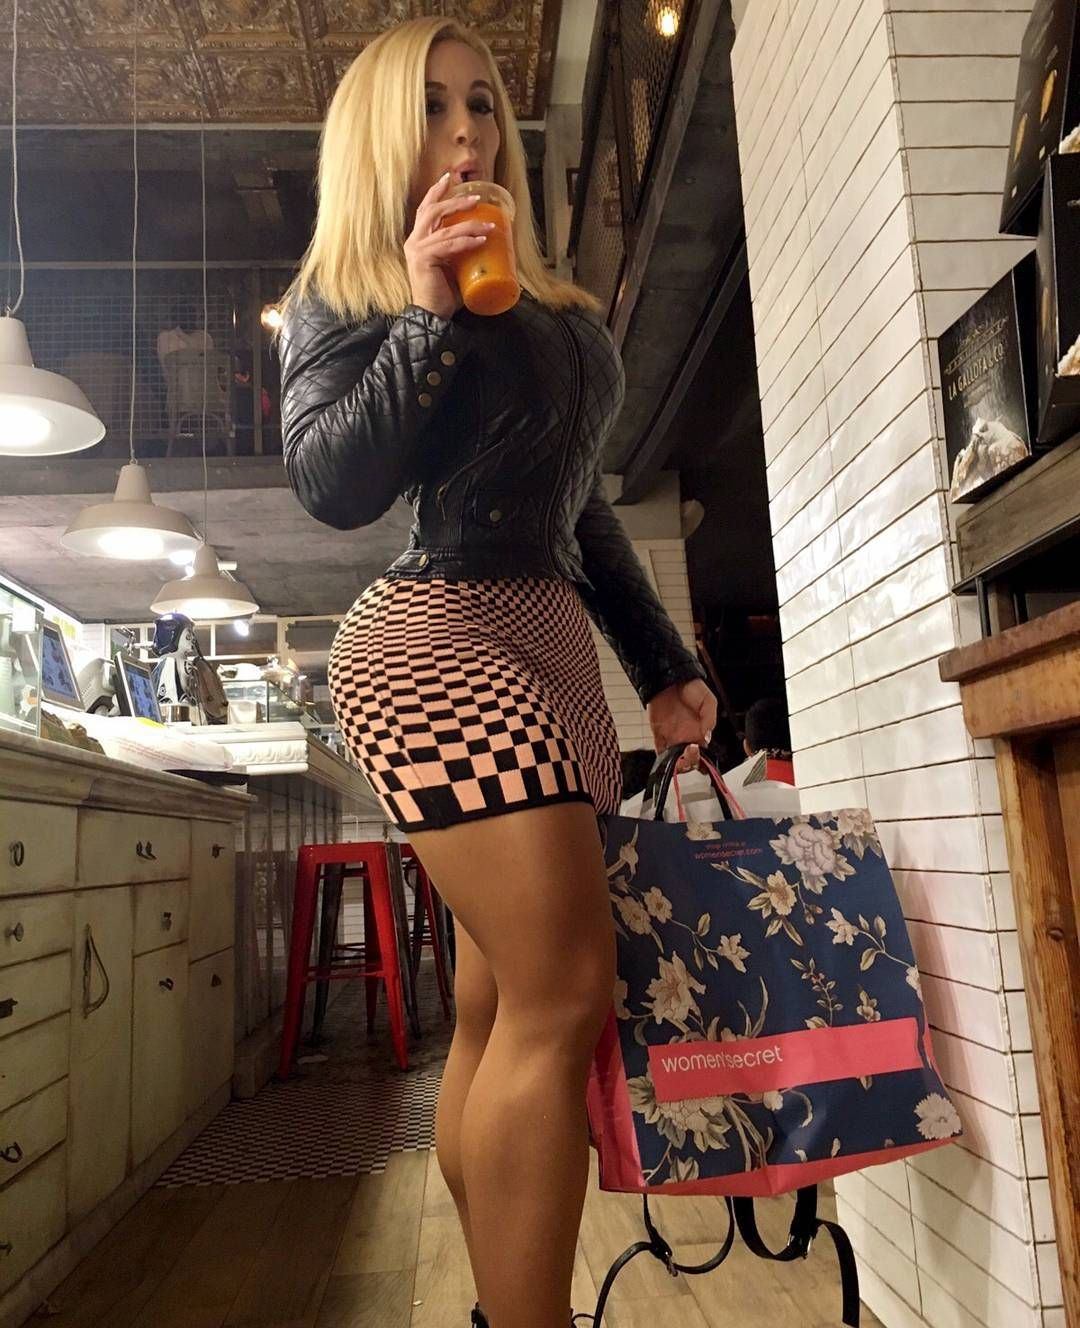 Victoria Lomba is fit and curvy Spanish woman who also has ...